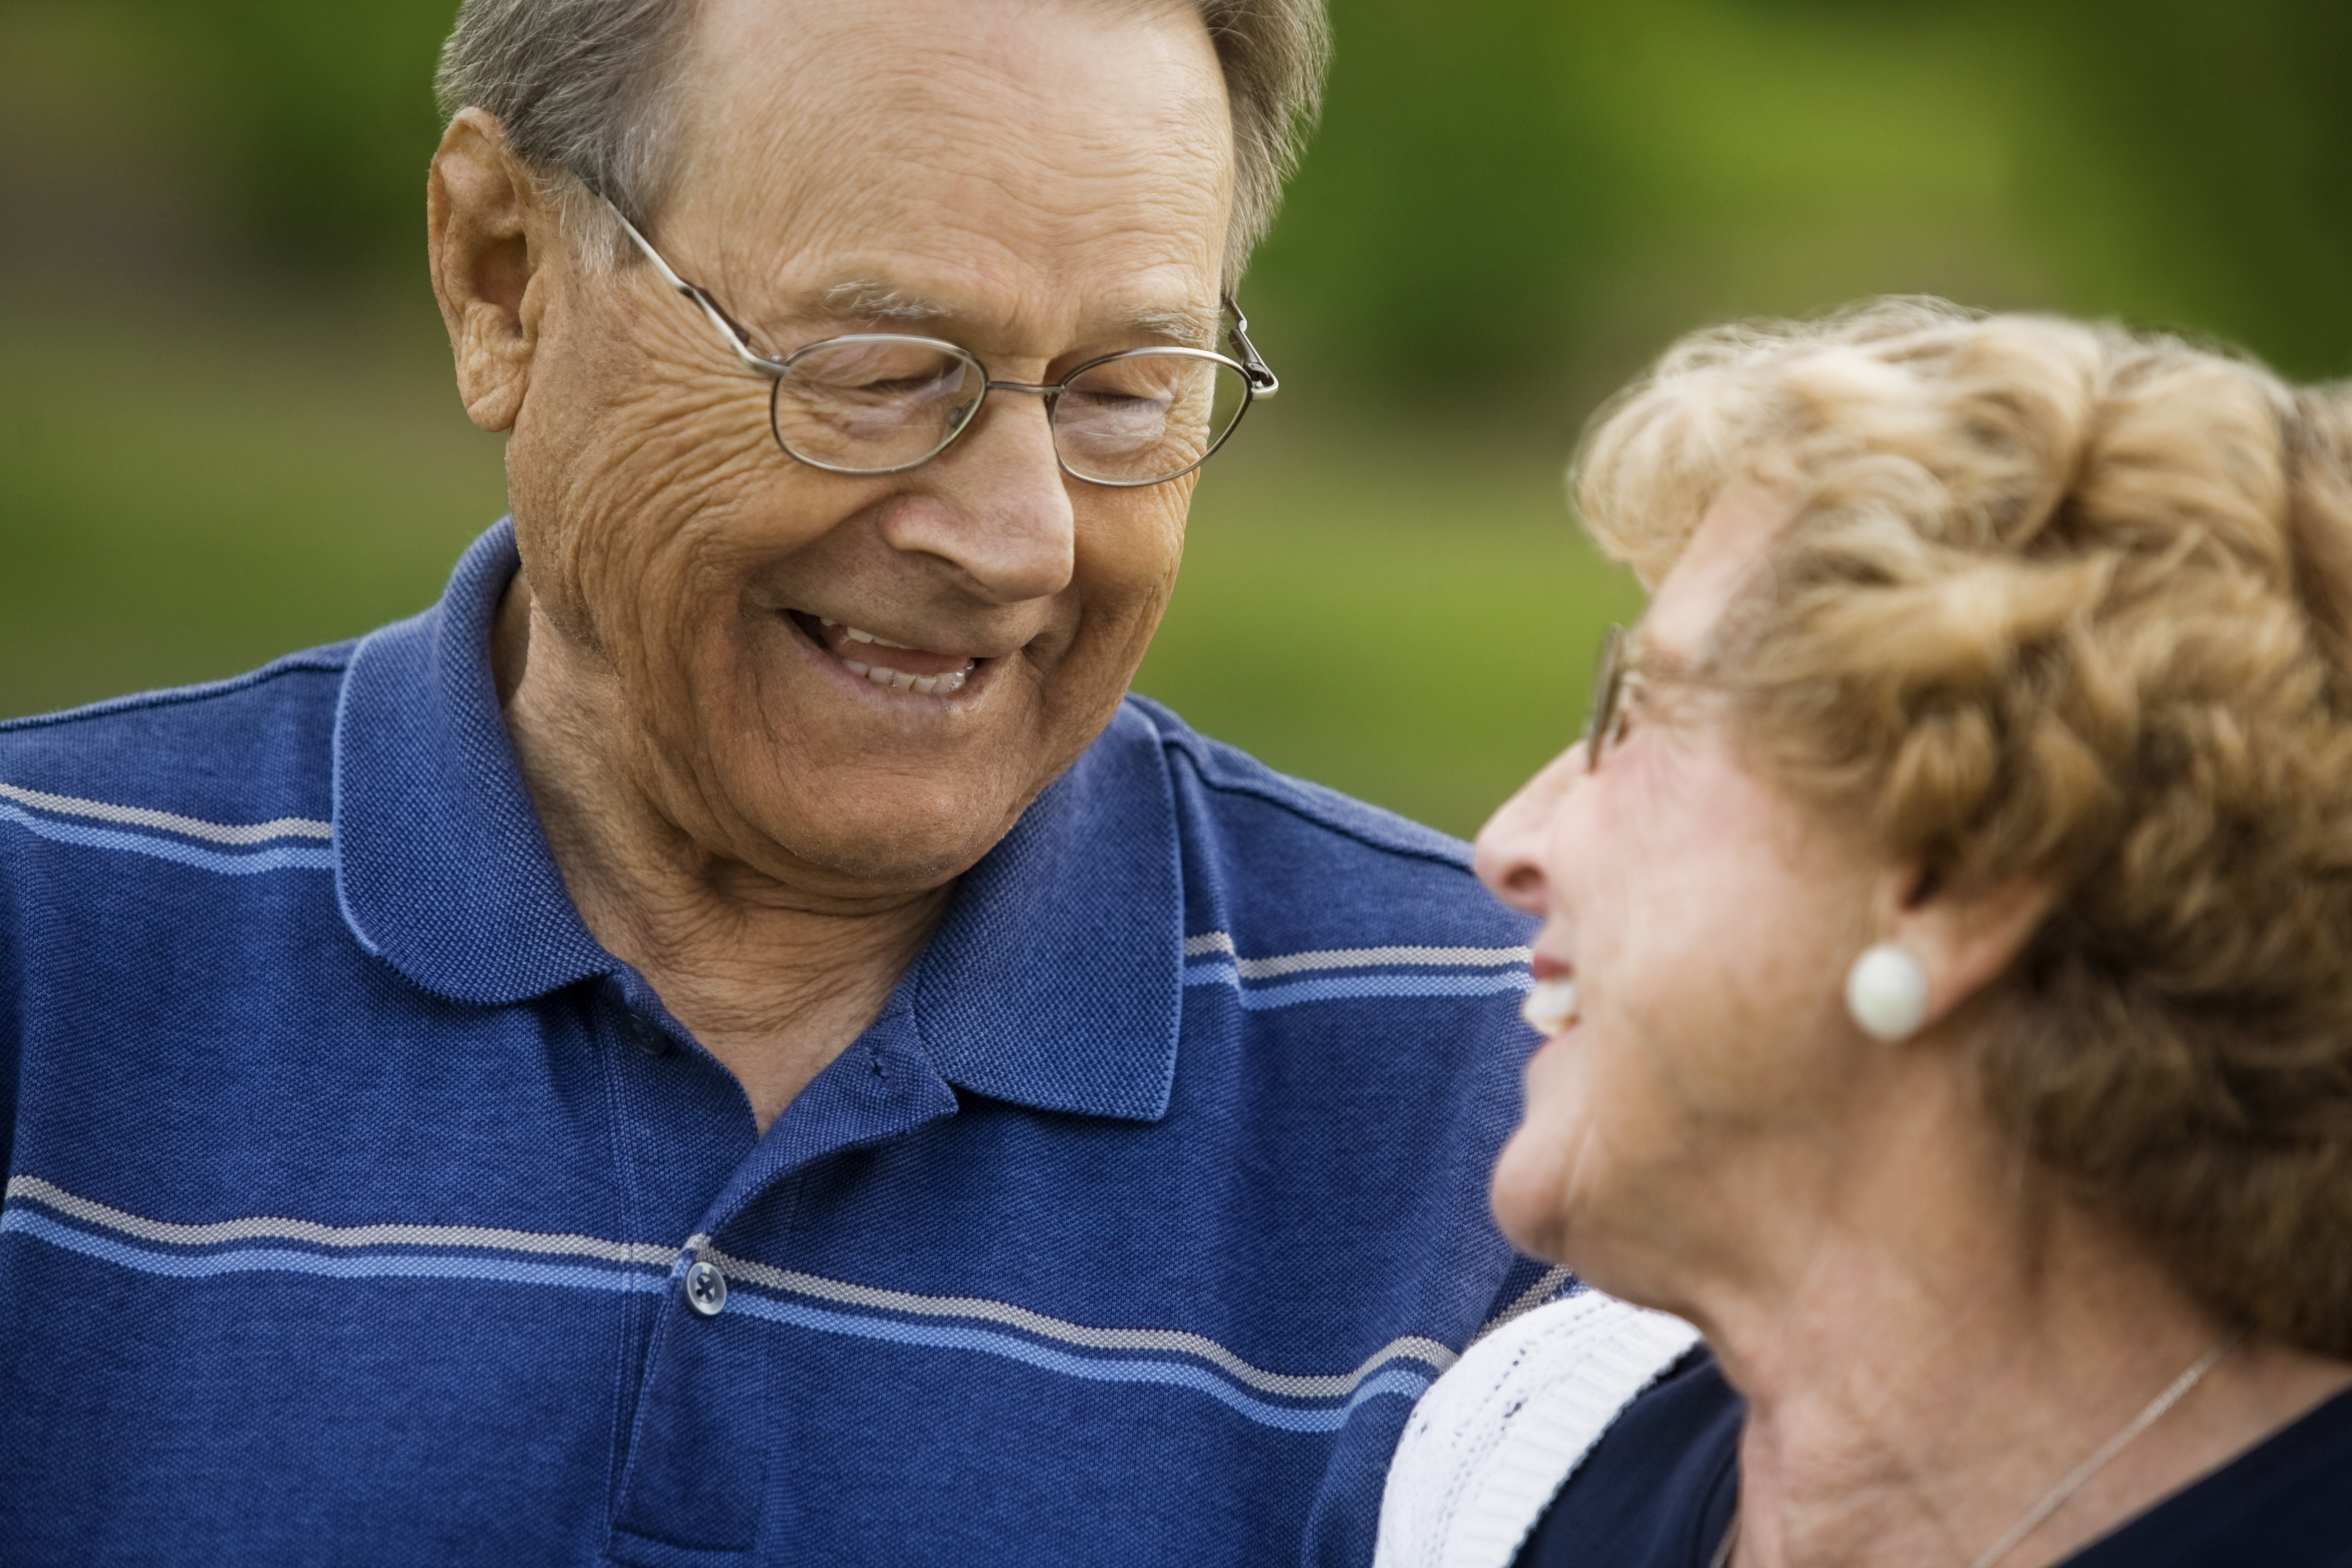 Senior couple looking at each other while smiling